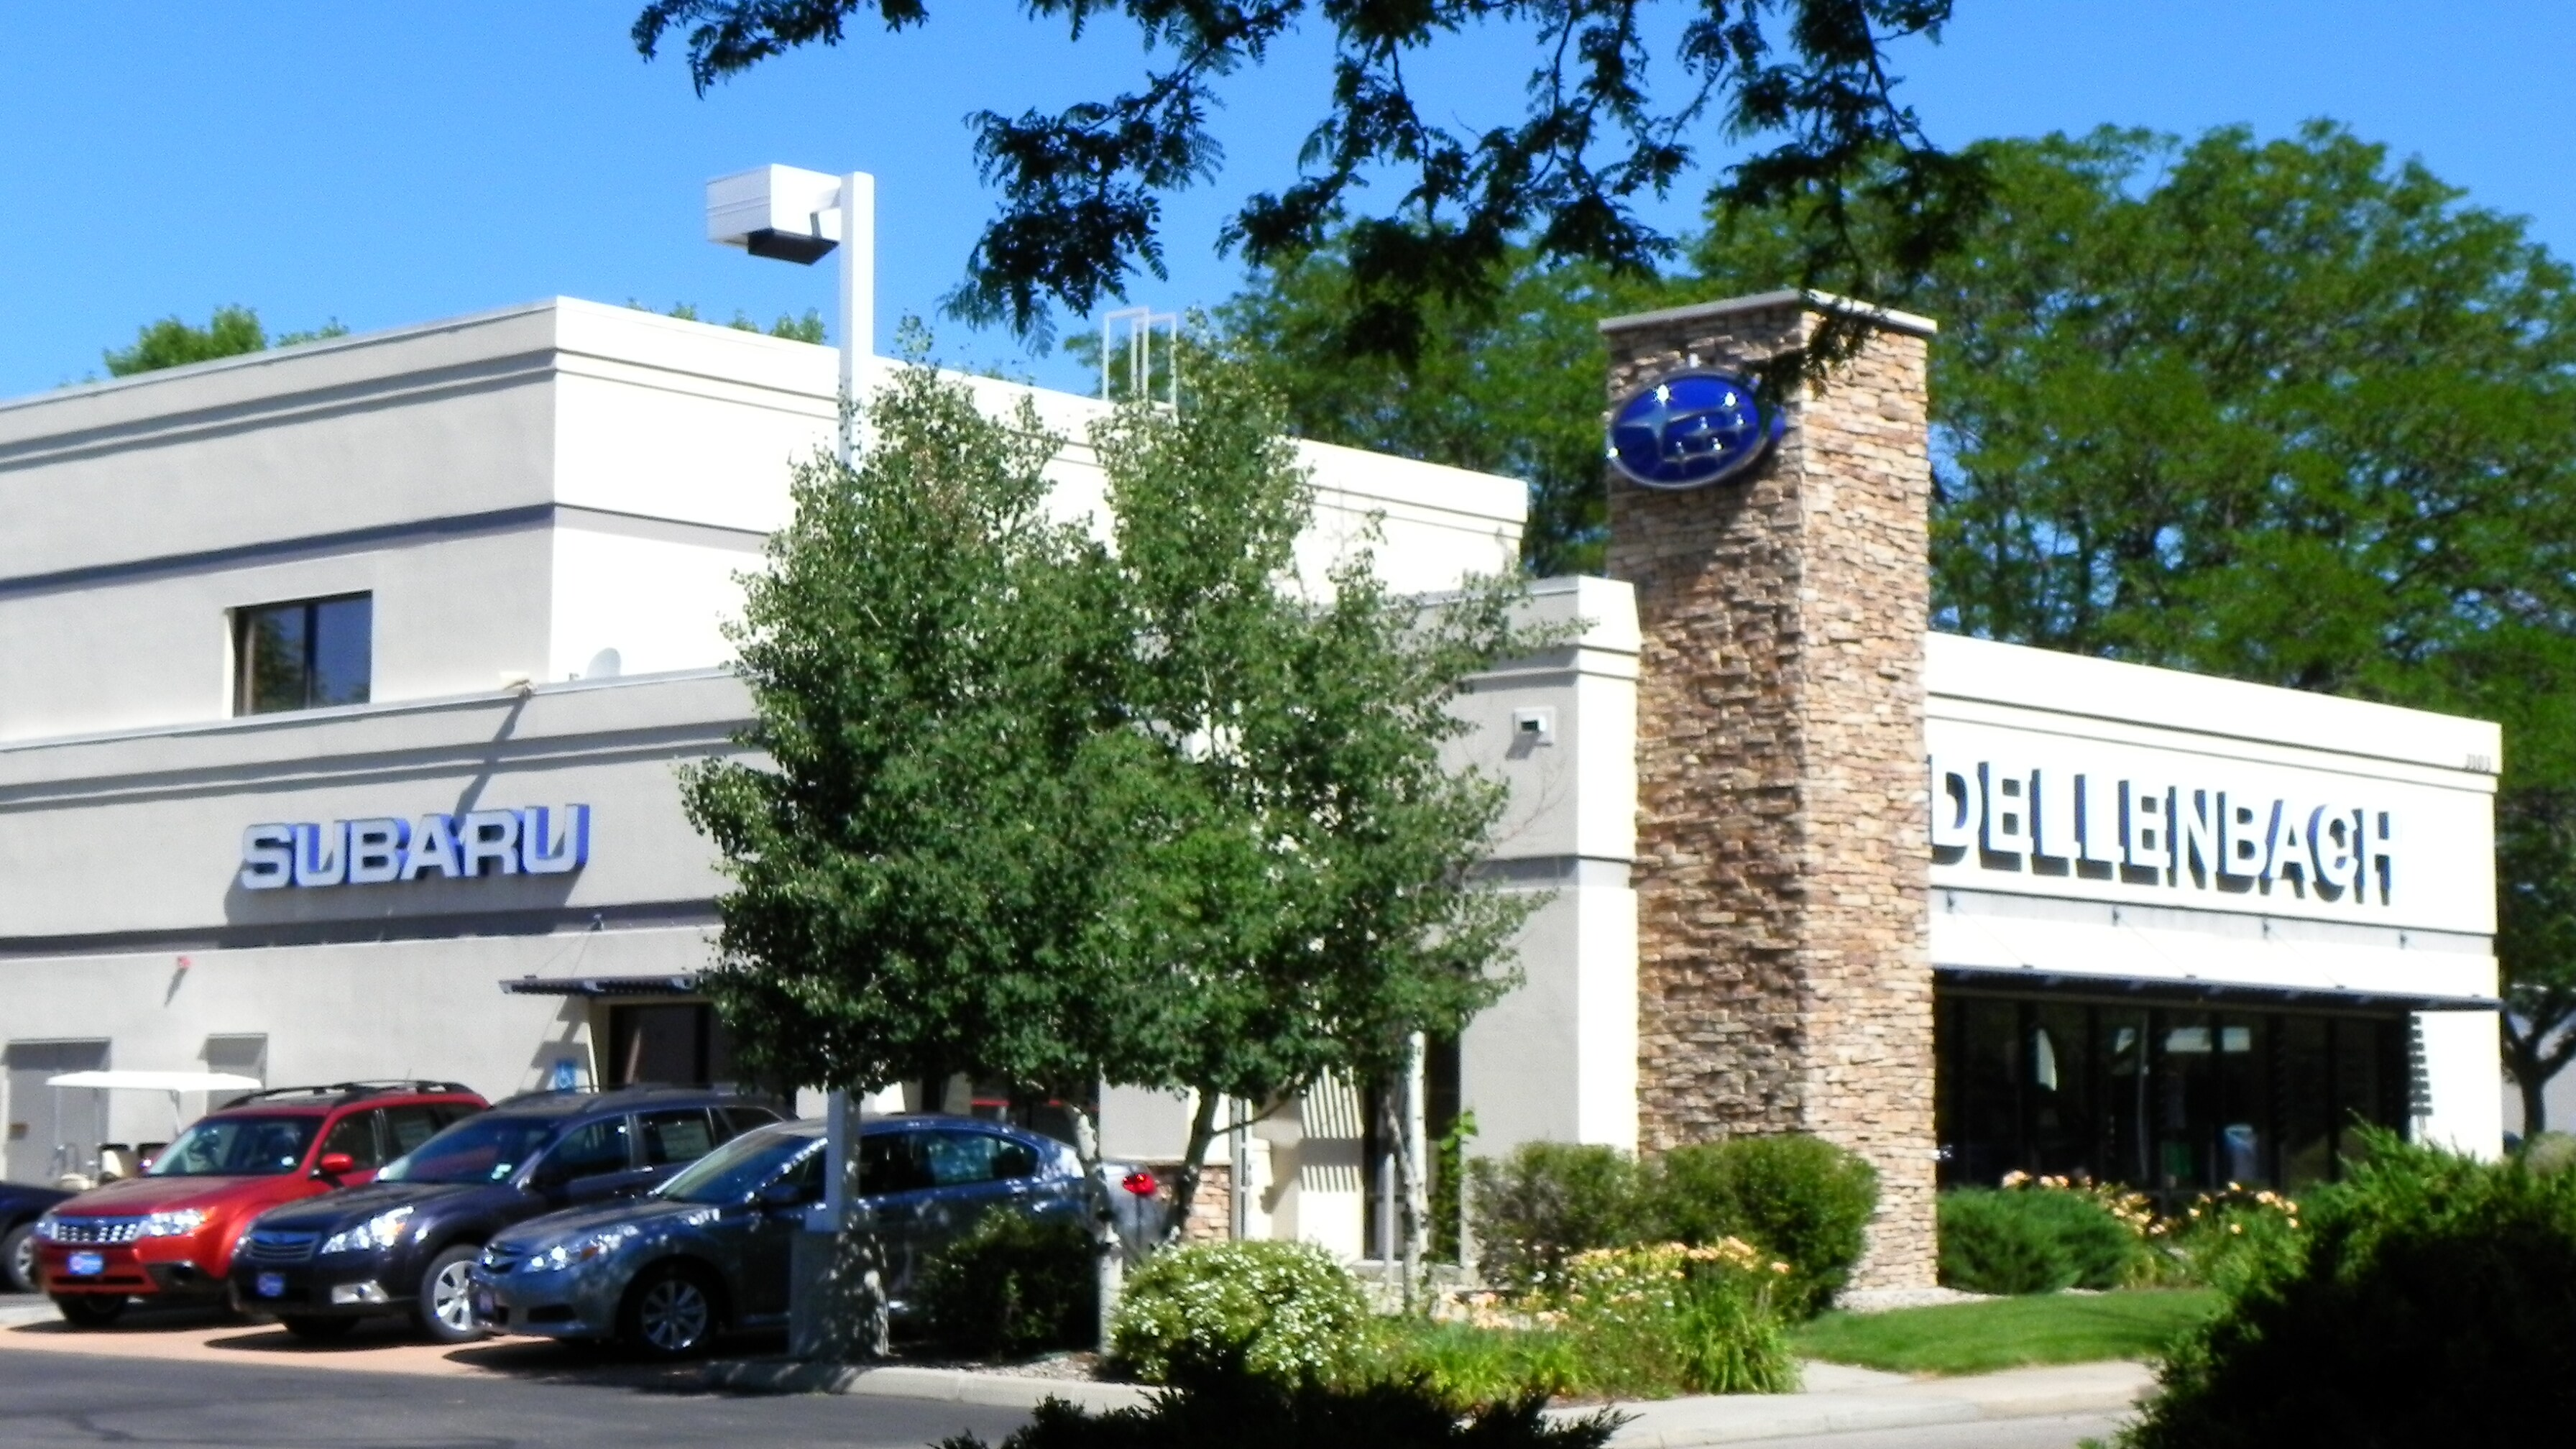 Se habla espanol dellenbach subaru fort collins co for Dellenbach motors used cars